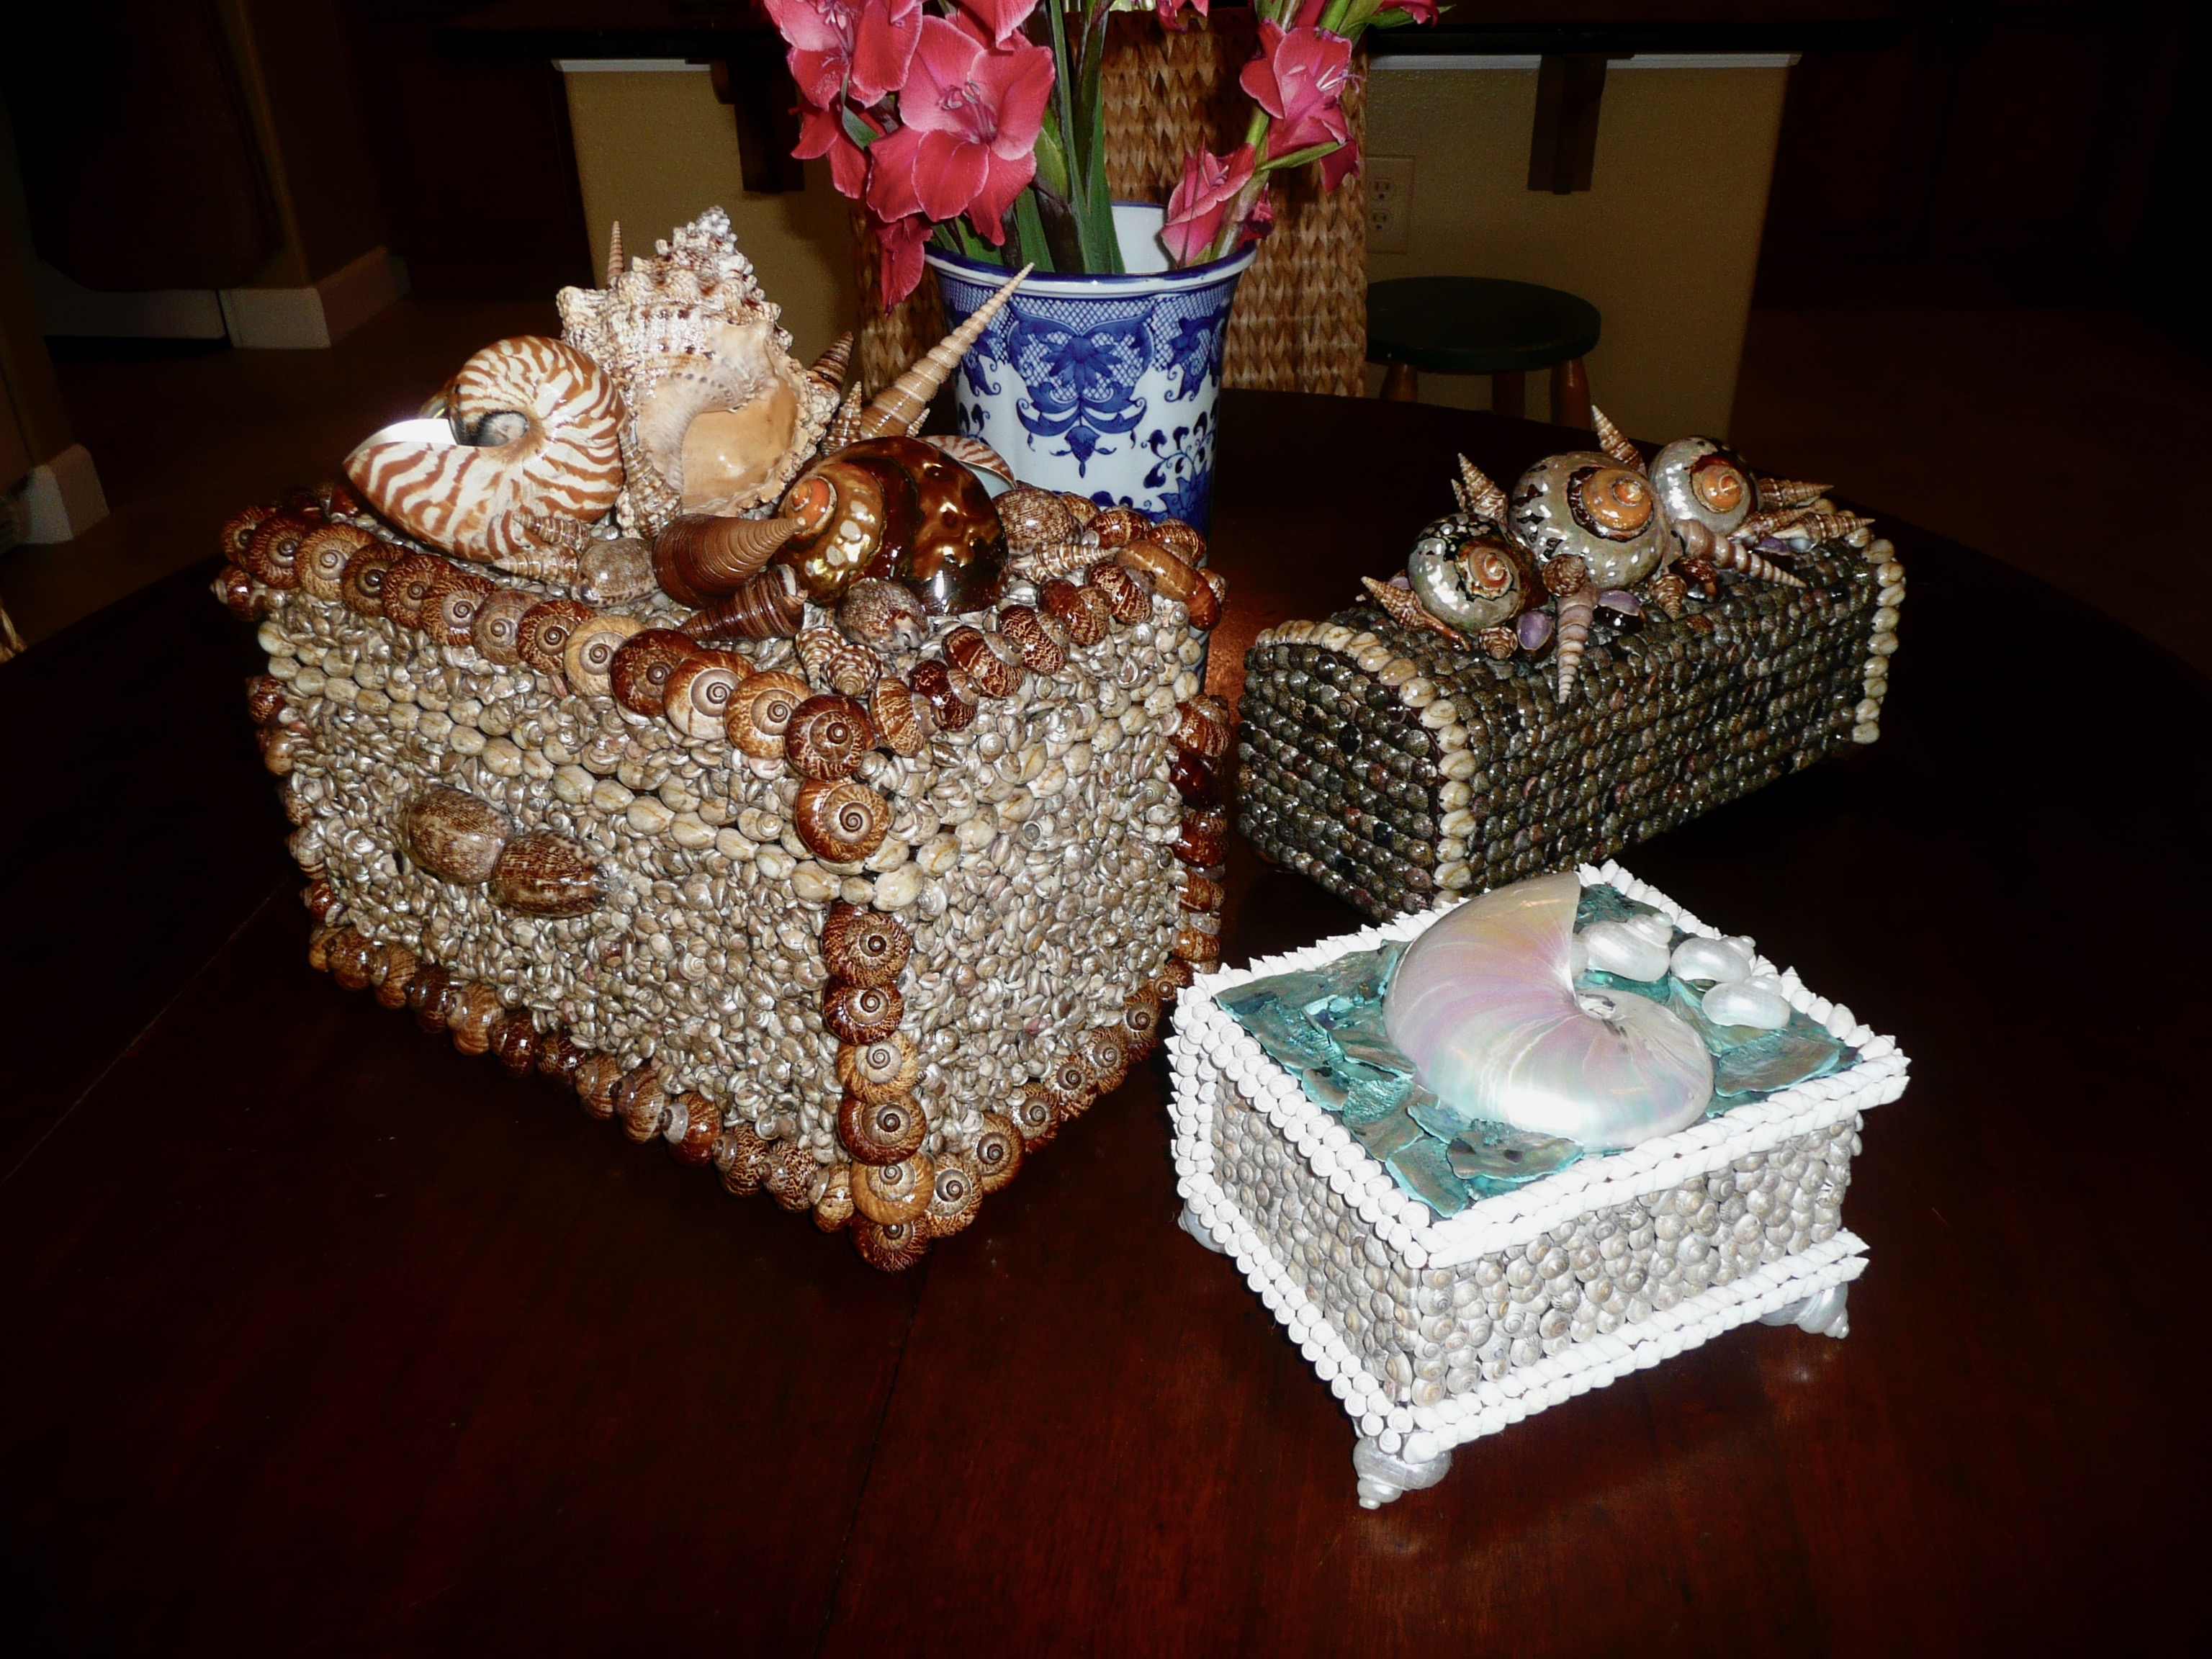 Three small boxes are made with different color sea shells. they sit together on a dark wood table with a blue and white vase of flowers behind them.